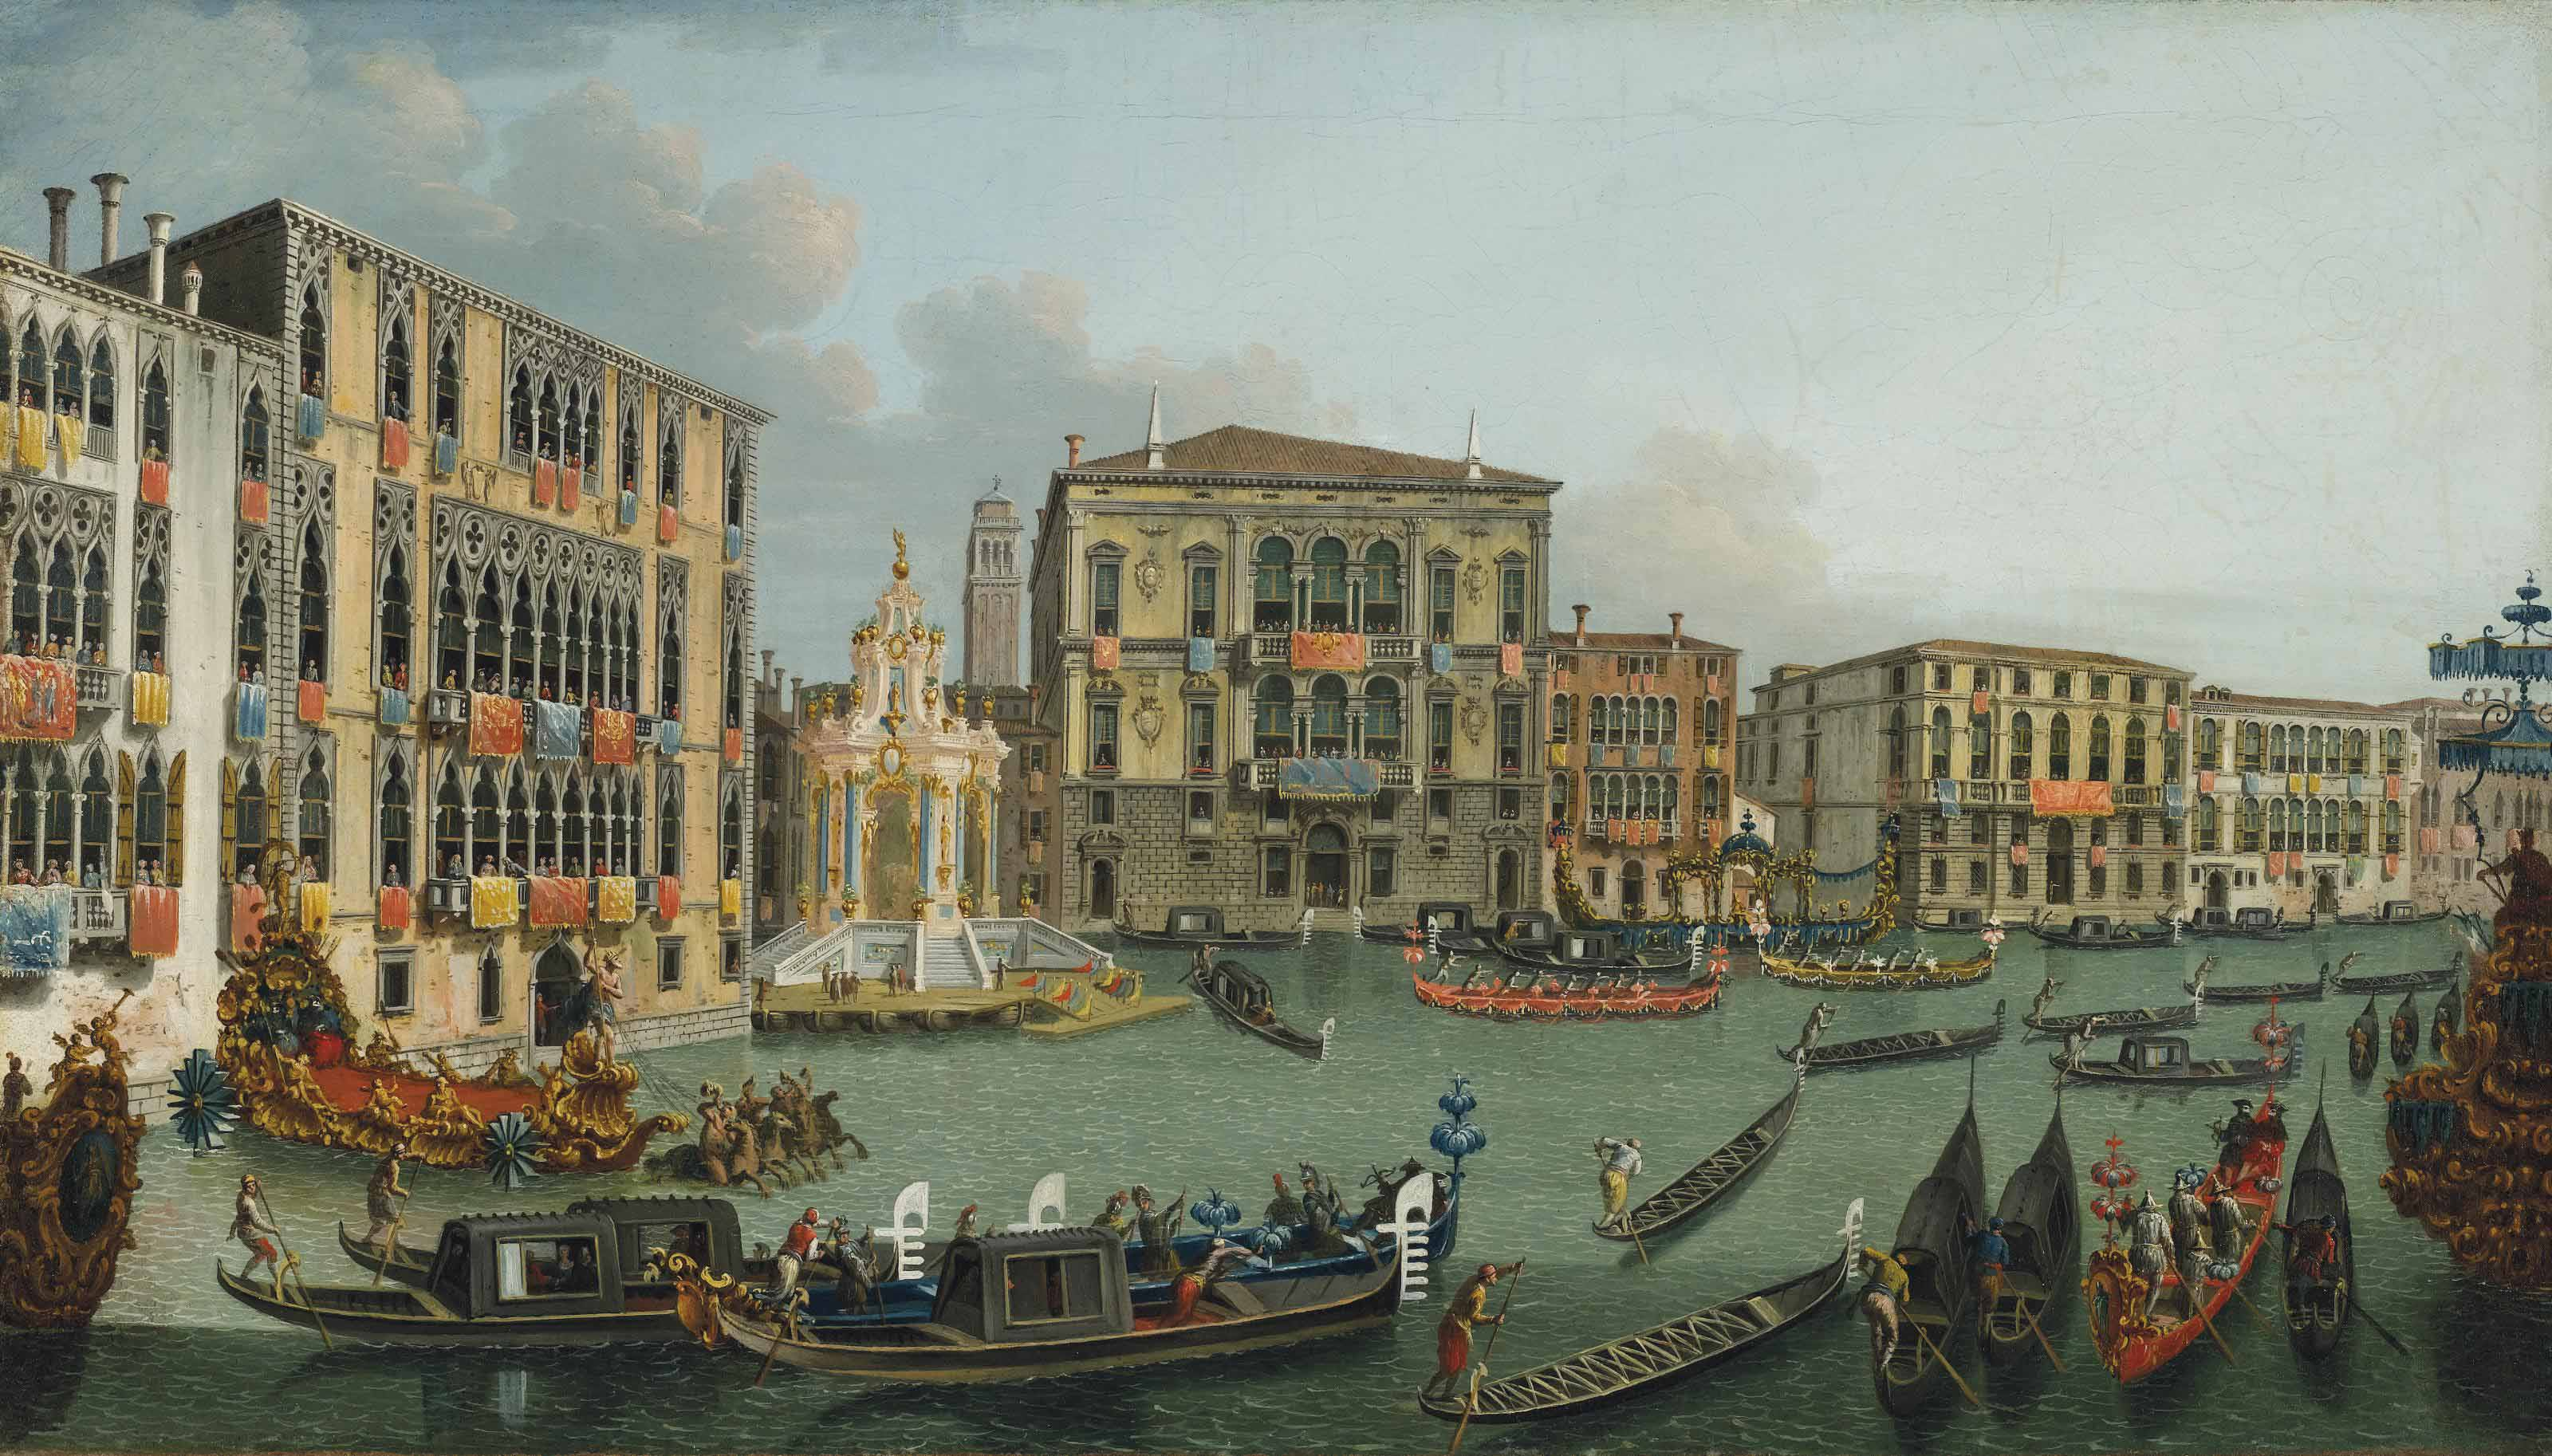 Vincenzo Chilone (Venice 1758-